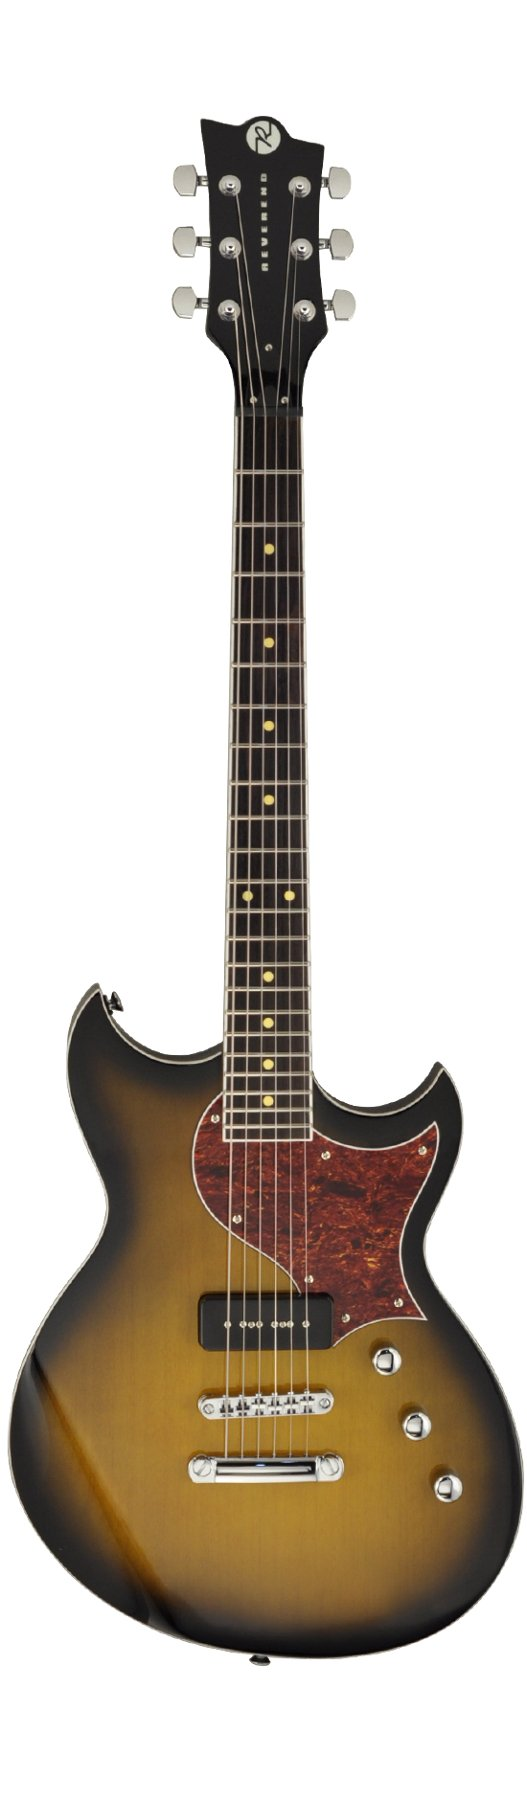 Single Pickup Solid Body Electric Guitar